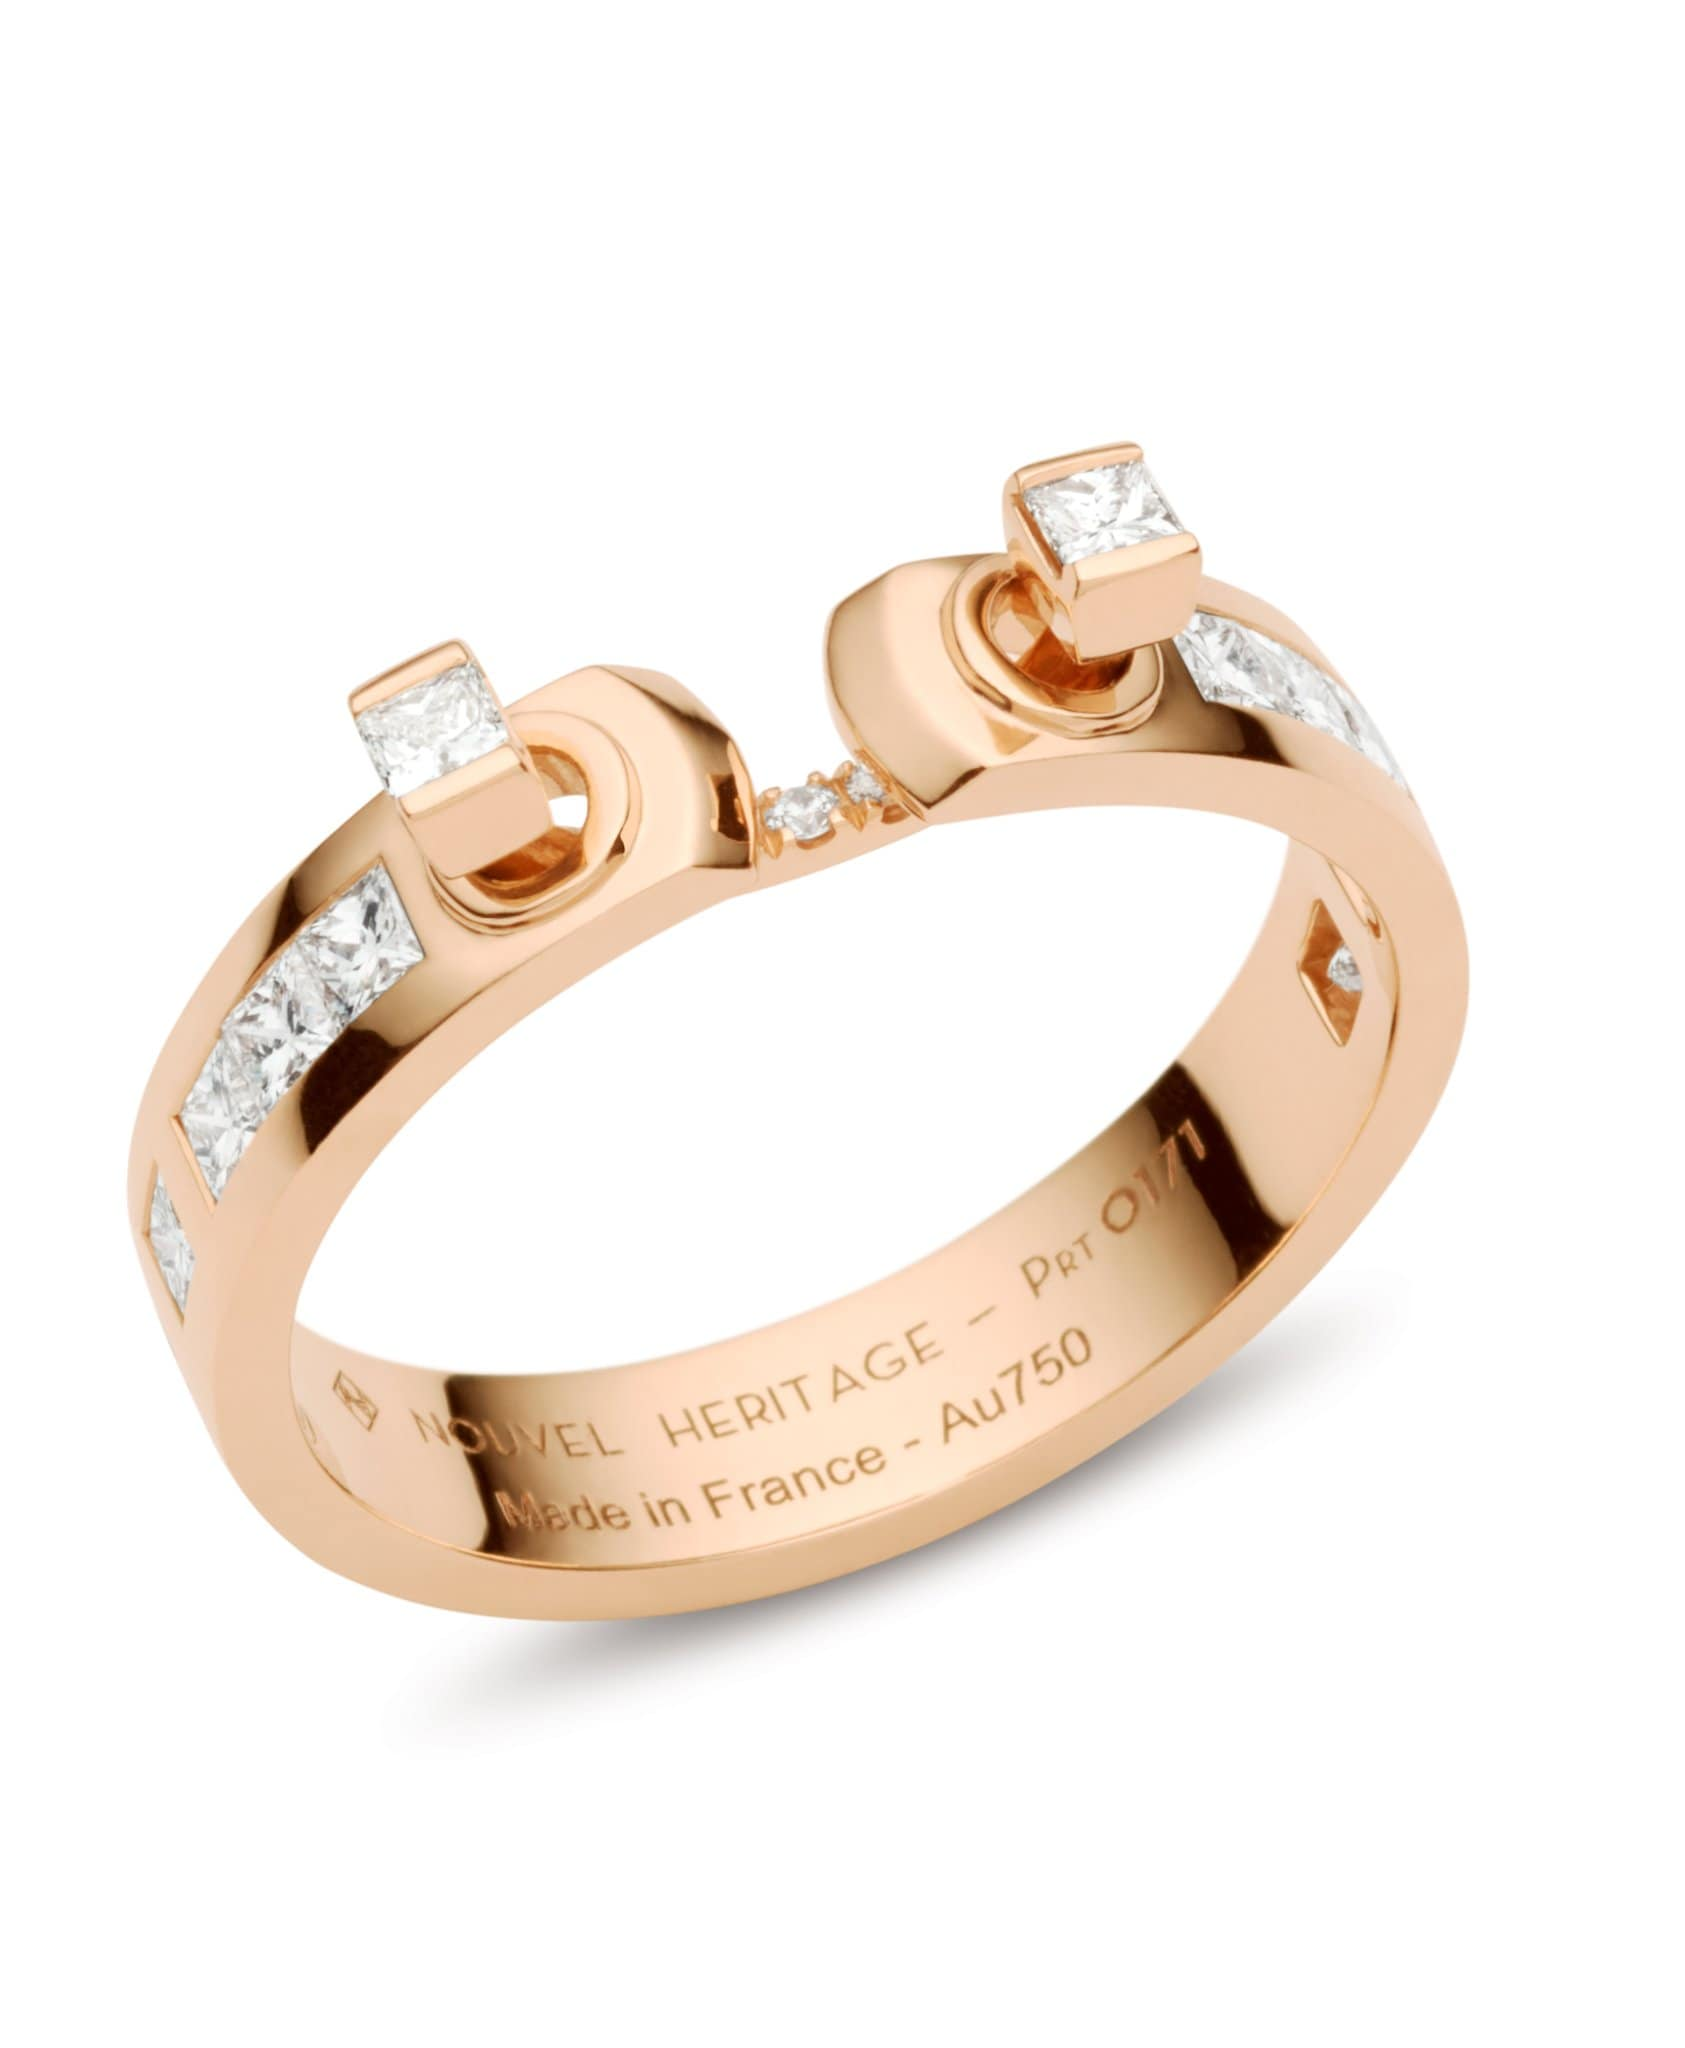 My Best Friend's Wedding Mood Ring: Discover Luxury Fine Jewelry | Nouvel Heritage || Rose Gold